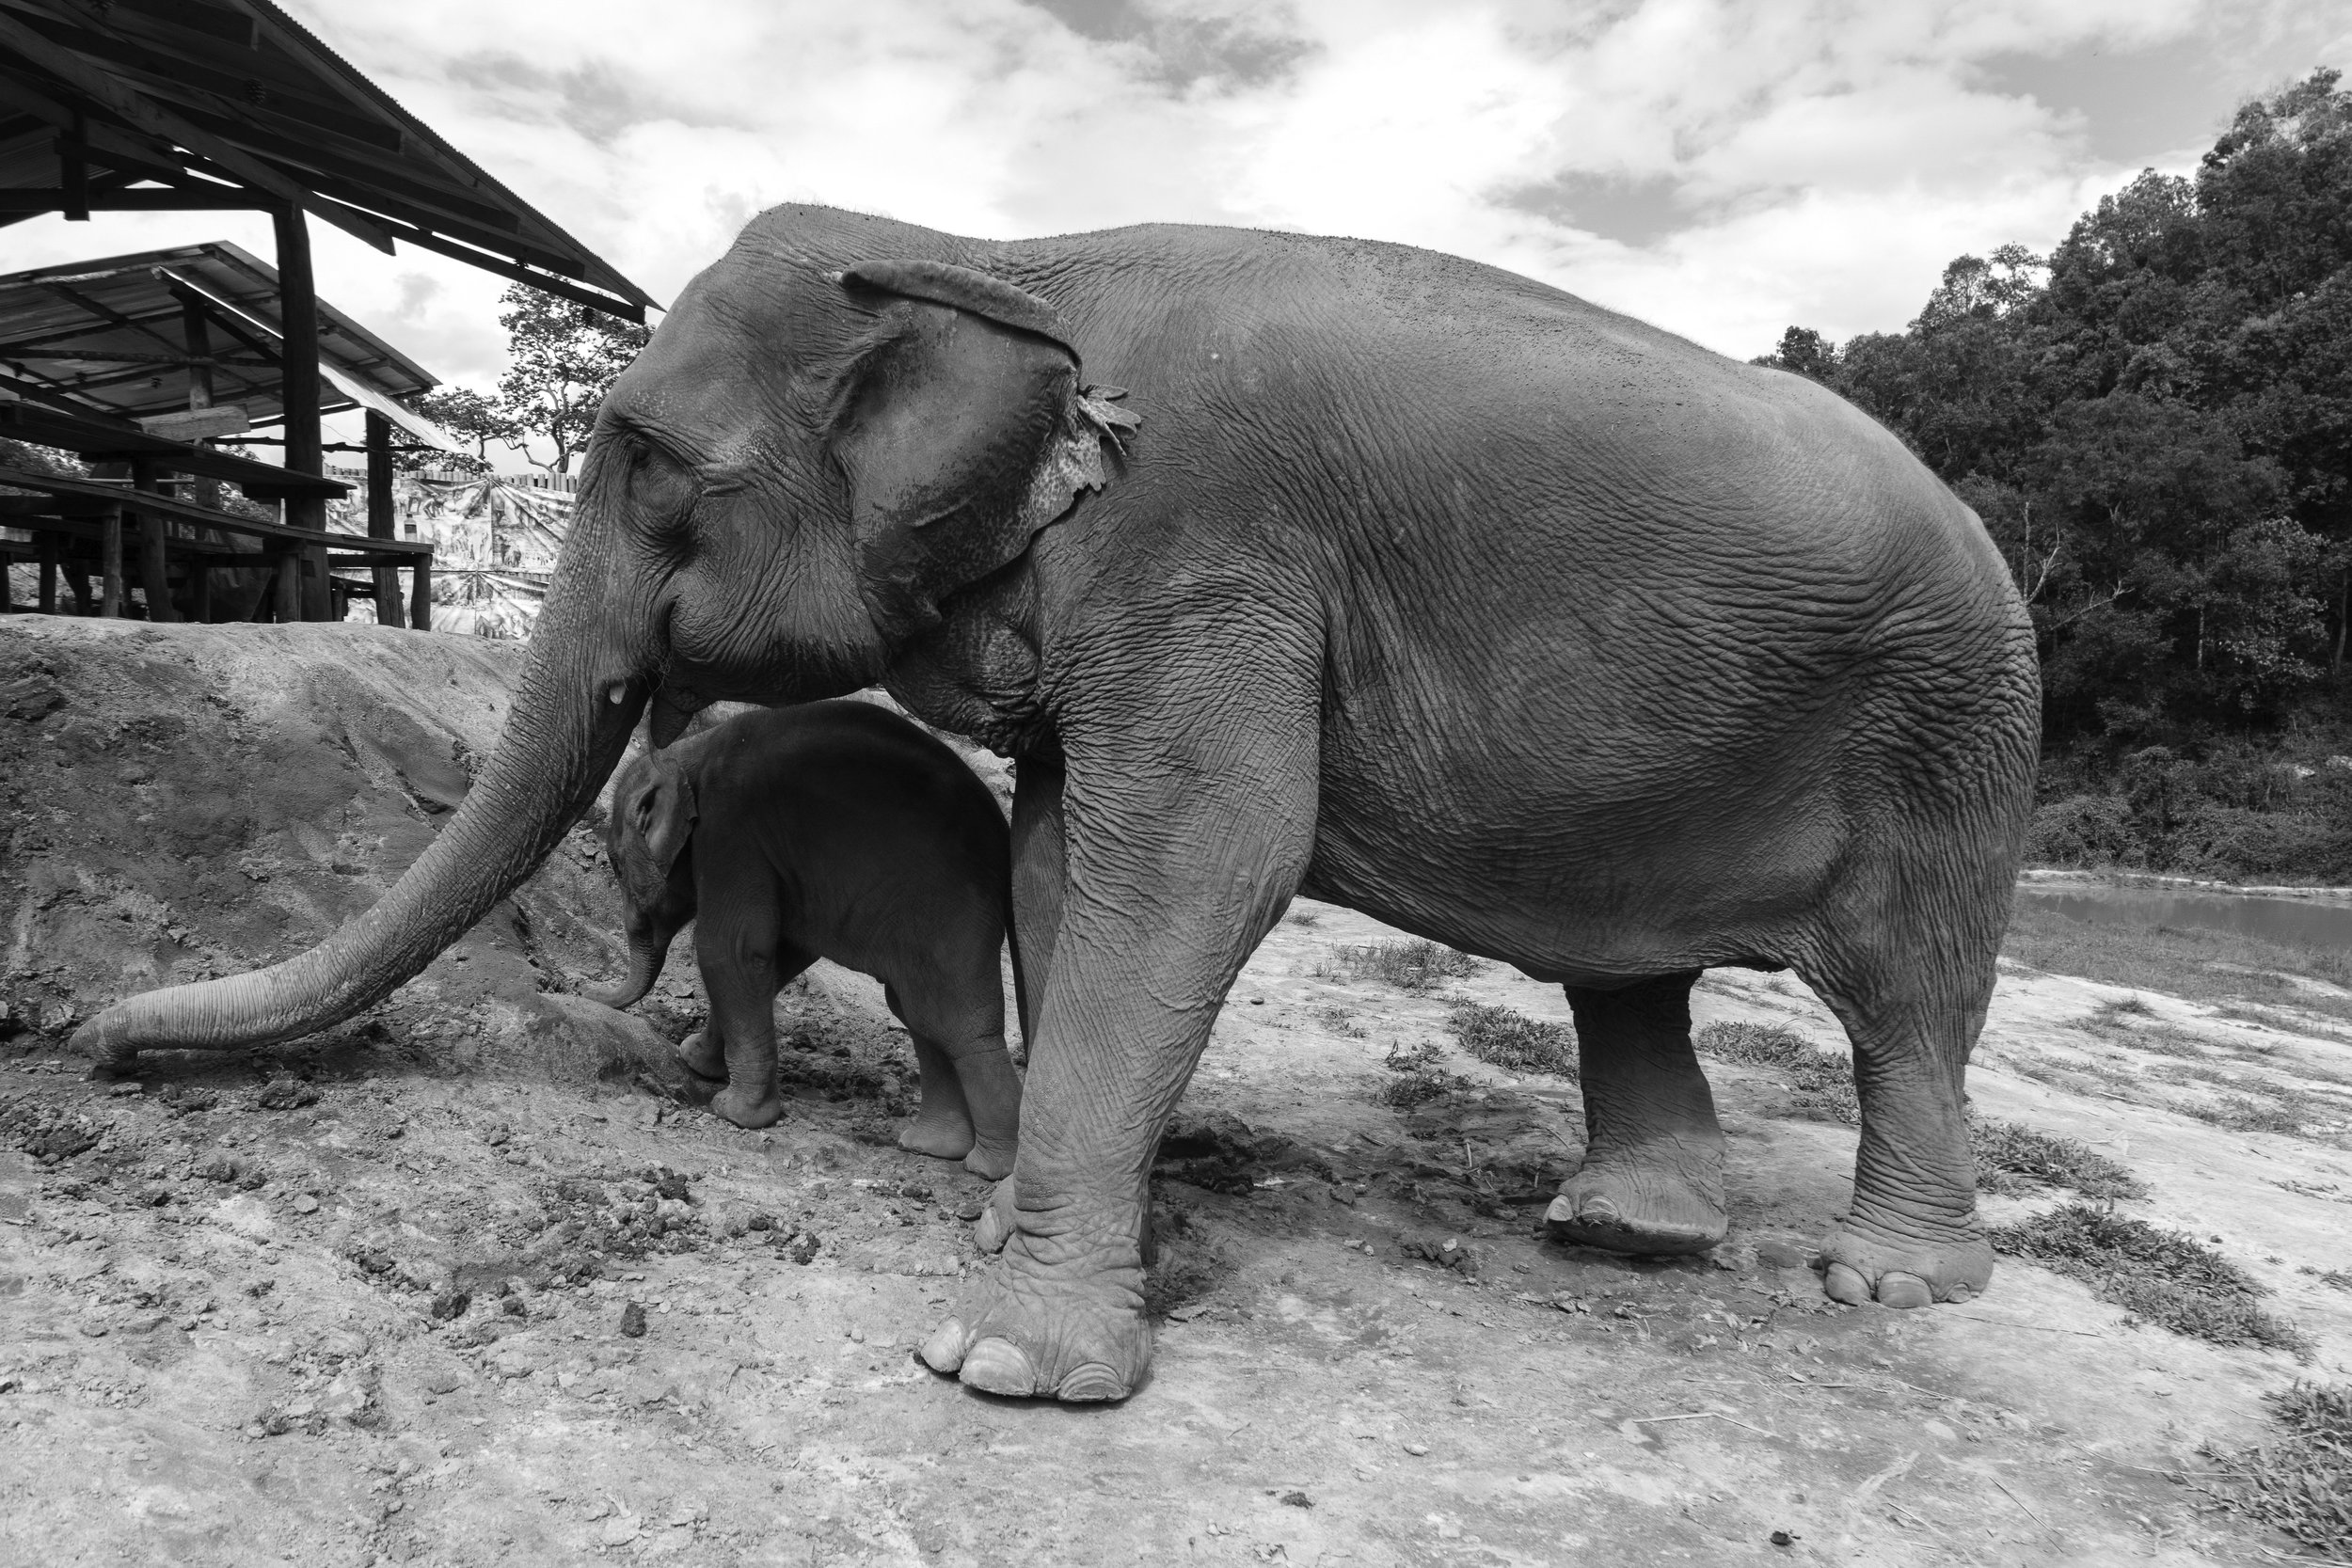 The-world-of-elephants-black-and-white-Thailand-mom-and-baby.jpg